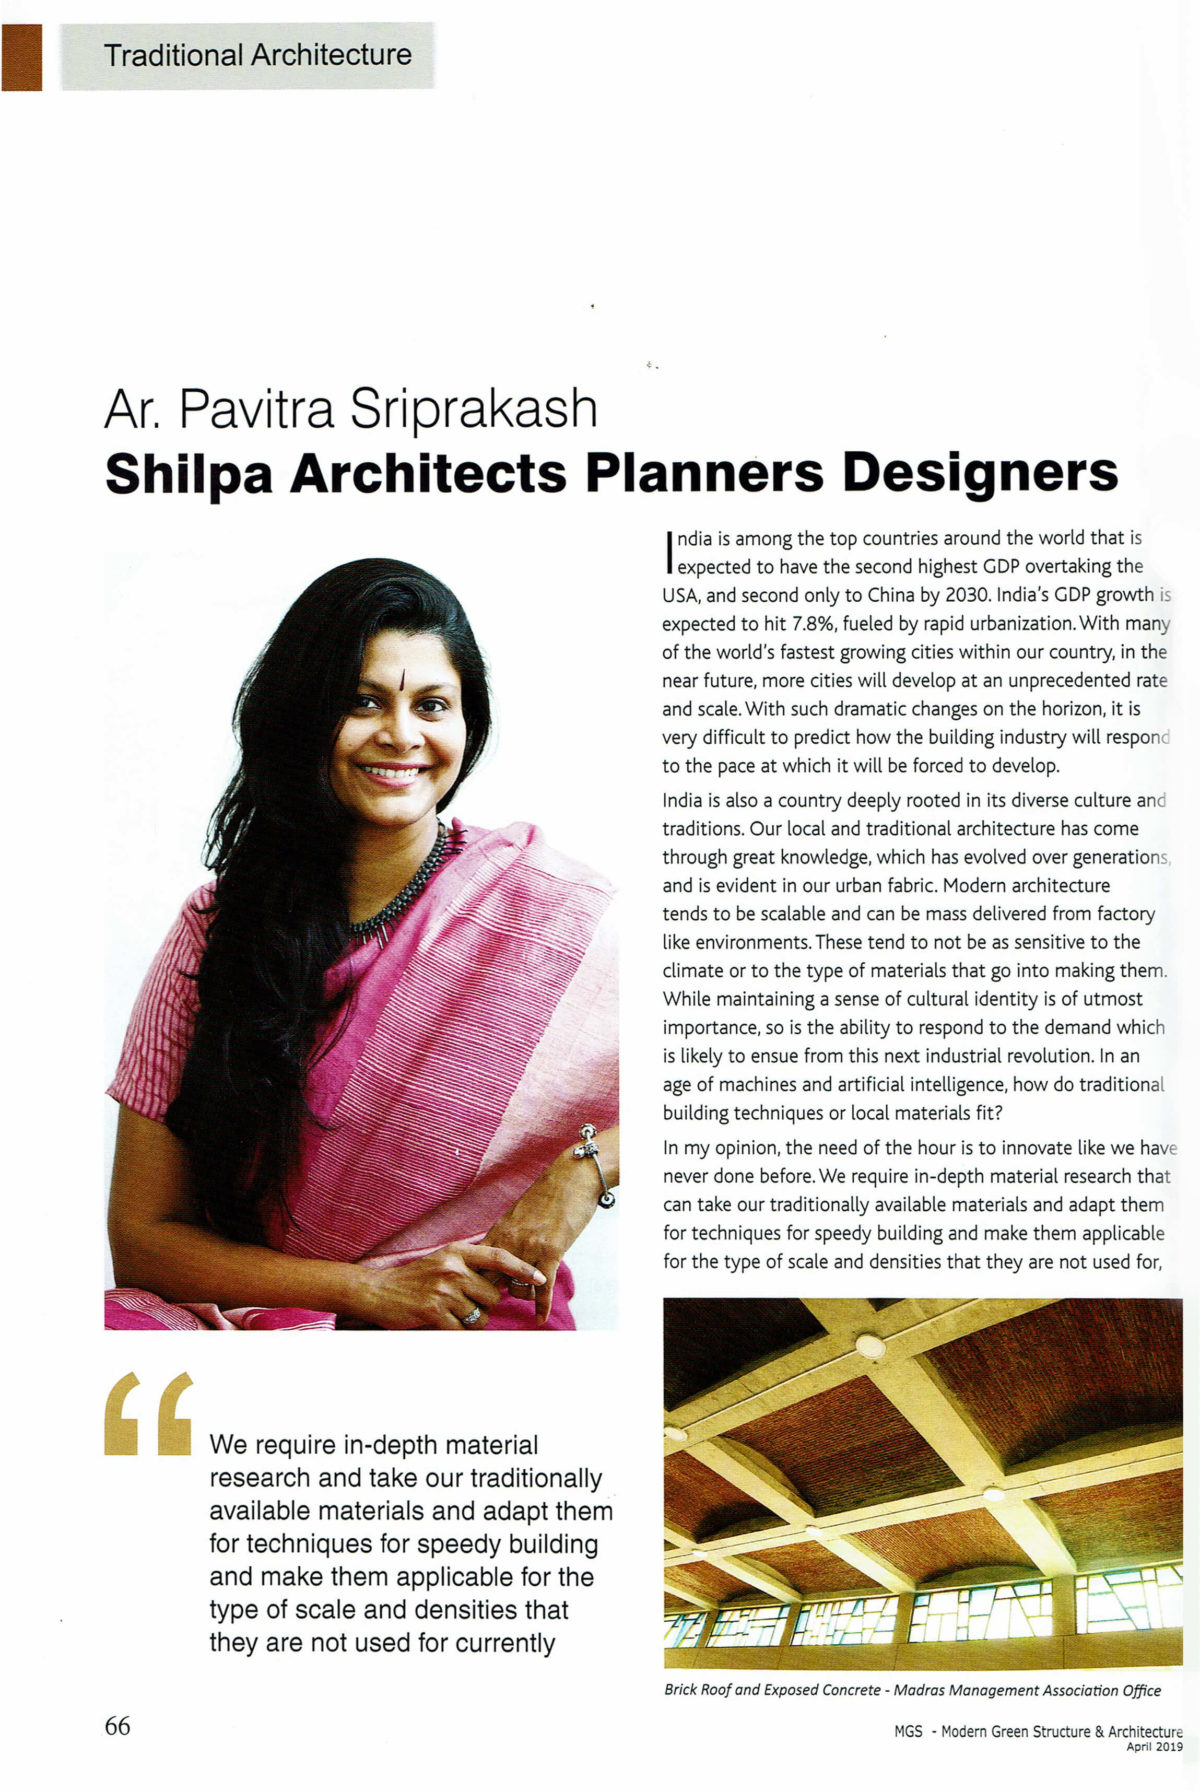 Pavitra Sriprakash, the Chief Designer and Director of Shilpa Architects Planners Designers is featured in the MGS Architecture magazine 2019.